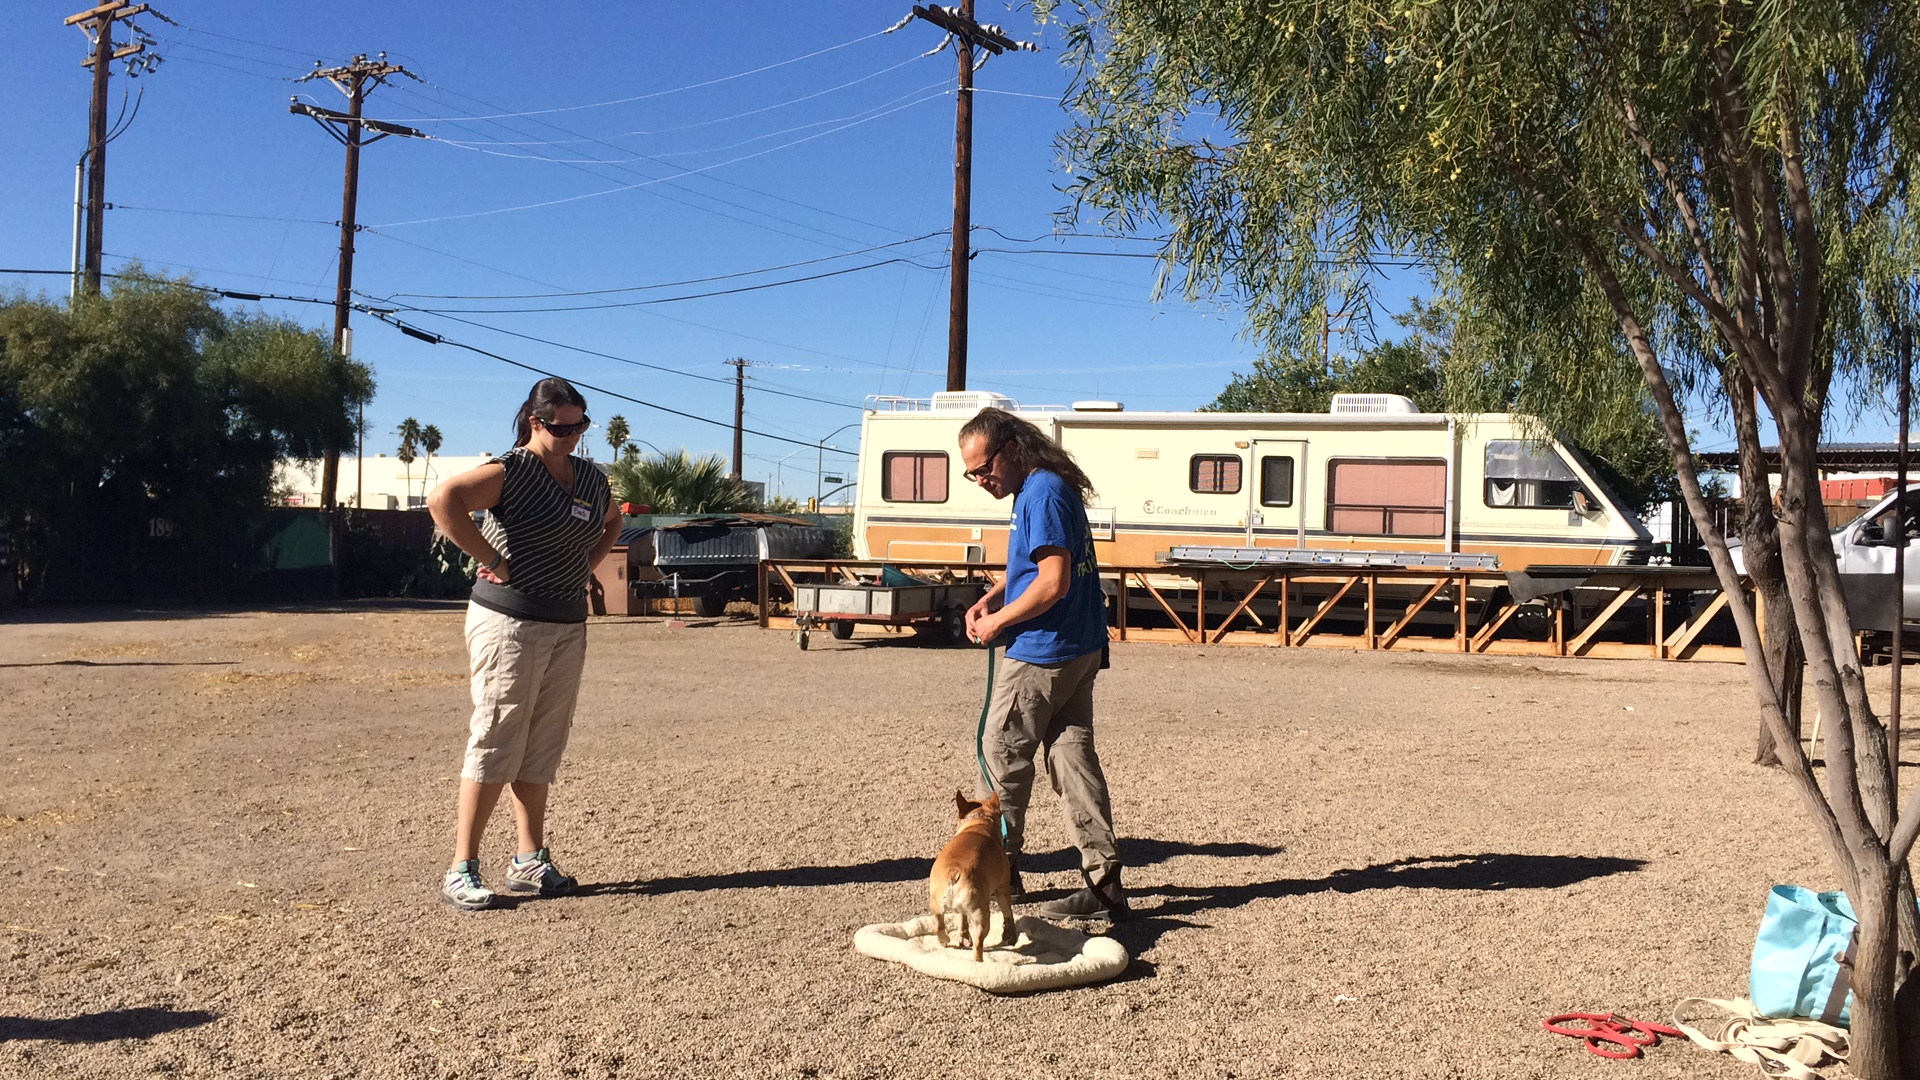 Jeff working with client on dog training